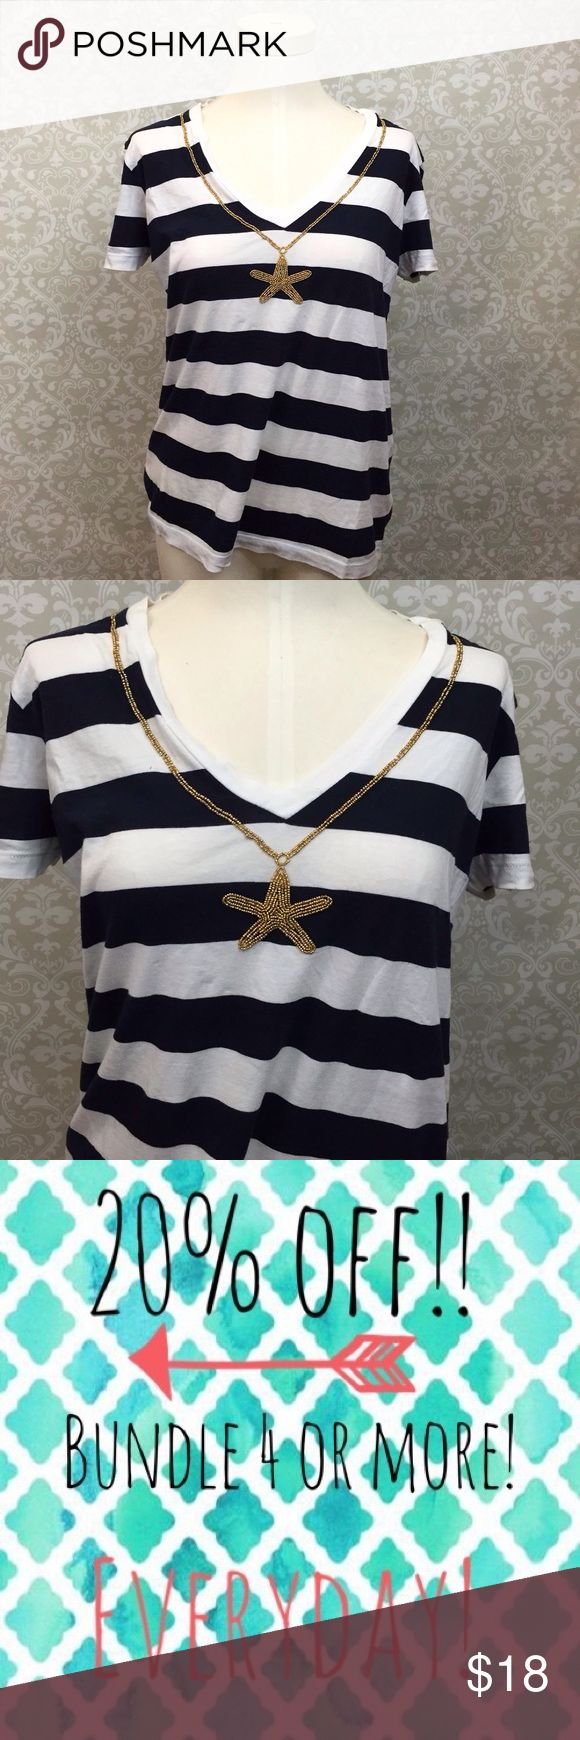 🎁Joe Fresh Nautical Striped Navy Starfish Tee Joe Fresh Large Womens Nautical Striped Navy Starfish Tee  This has been gently worn with no major flaws.  There may be slight signs of wash wear. Please refer to photos for more details. Joe Fresh Tops Tees - Short Sleeve